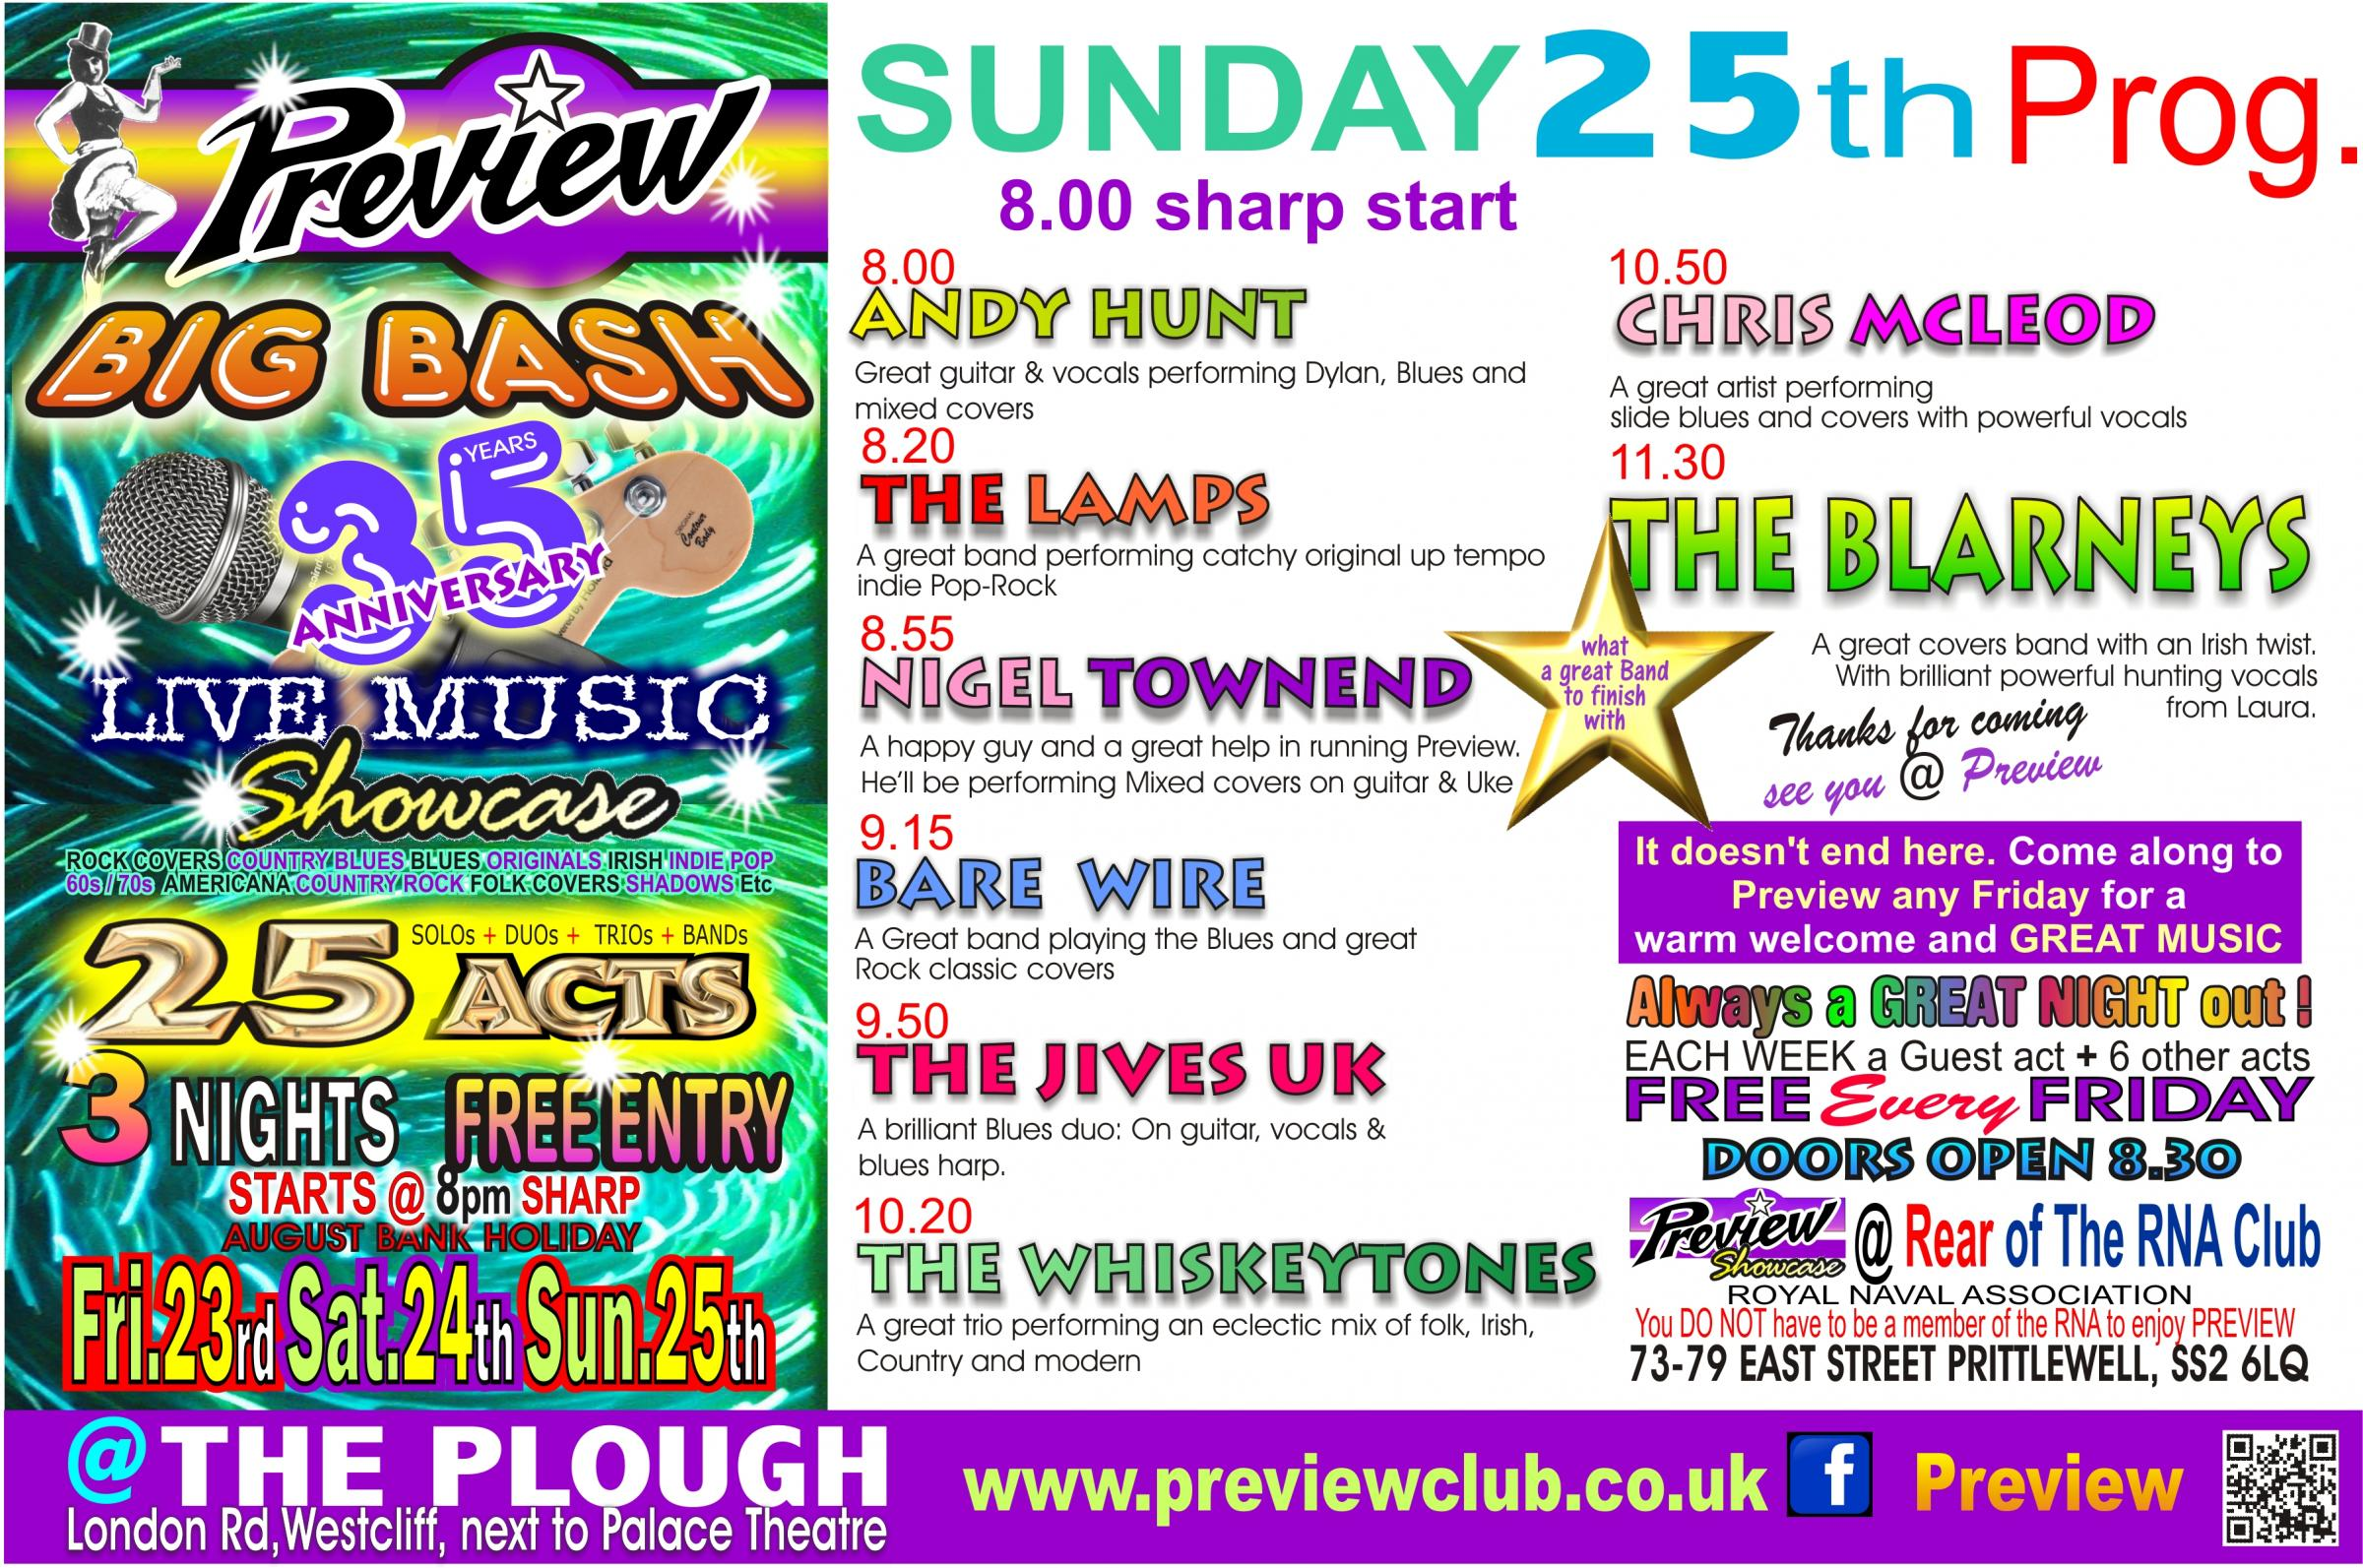 PREVIEW's Live Music BIG BASH Sunday 25th